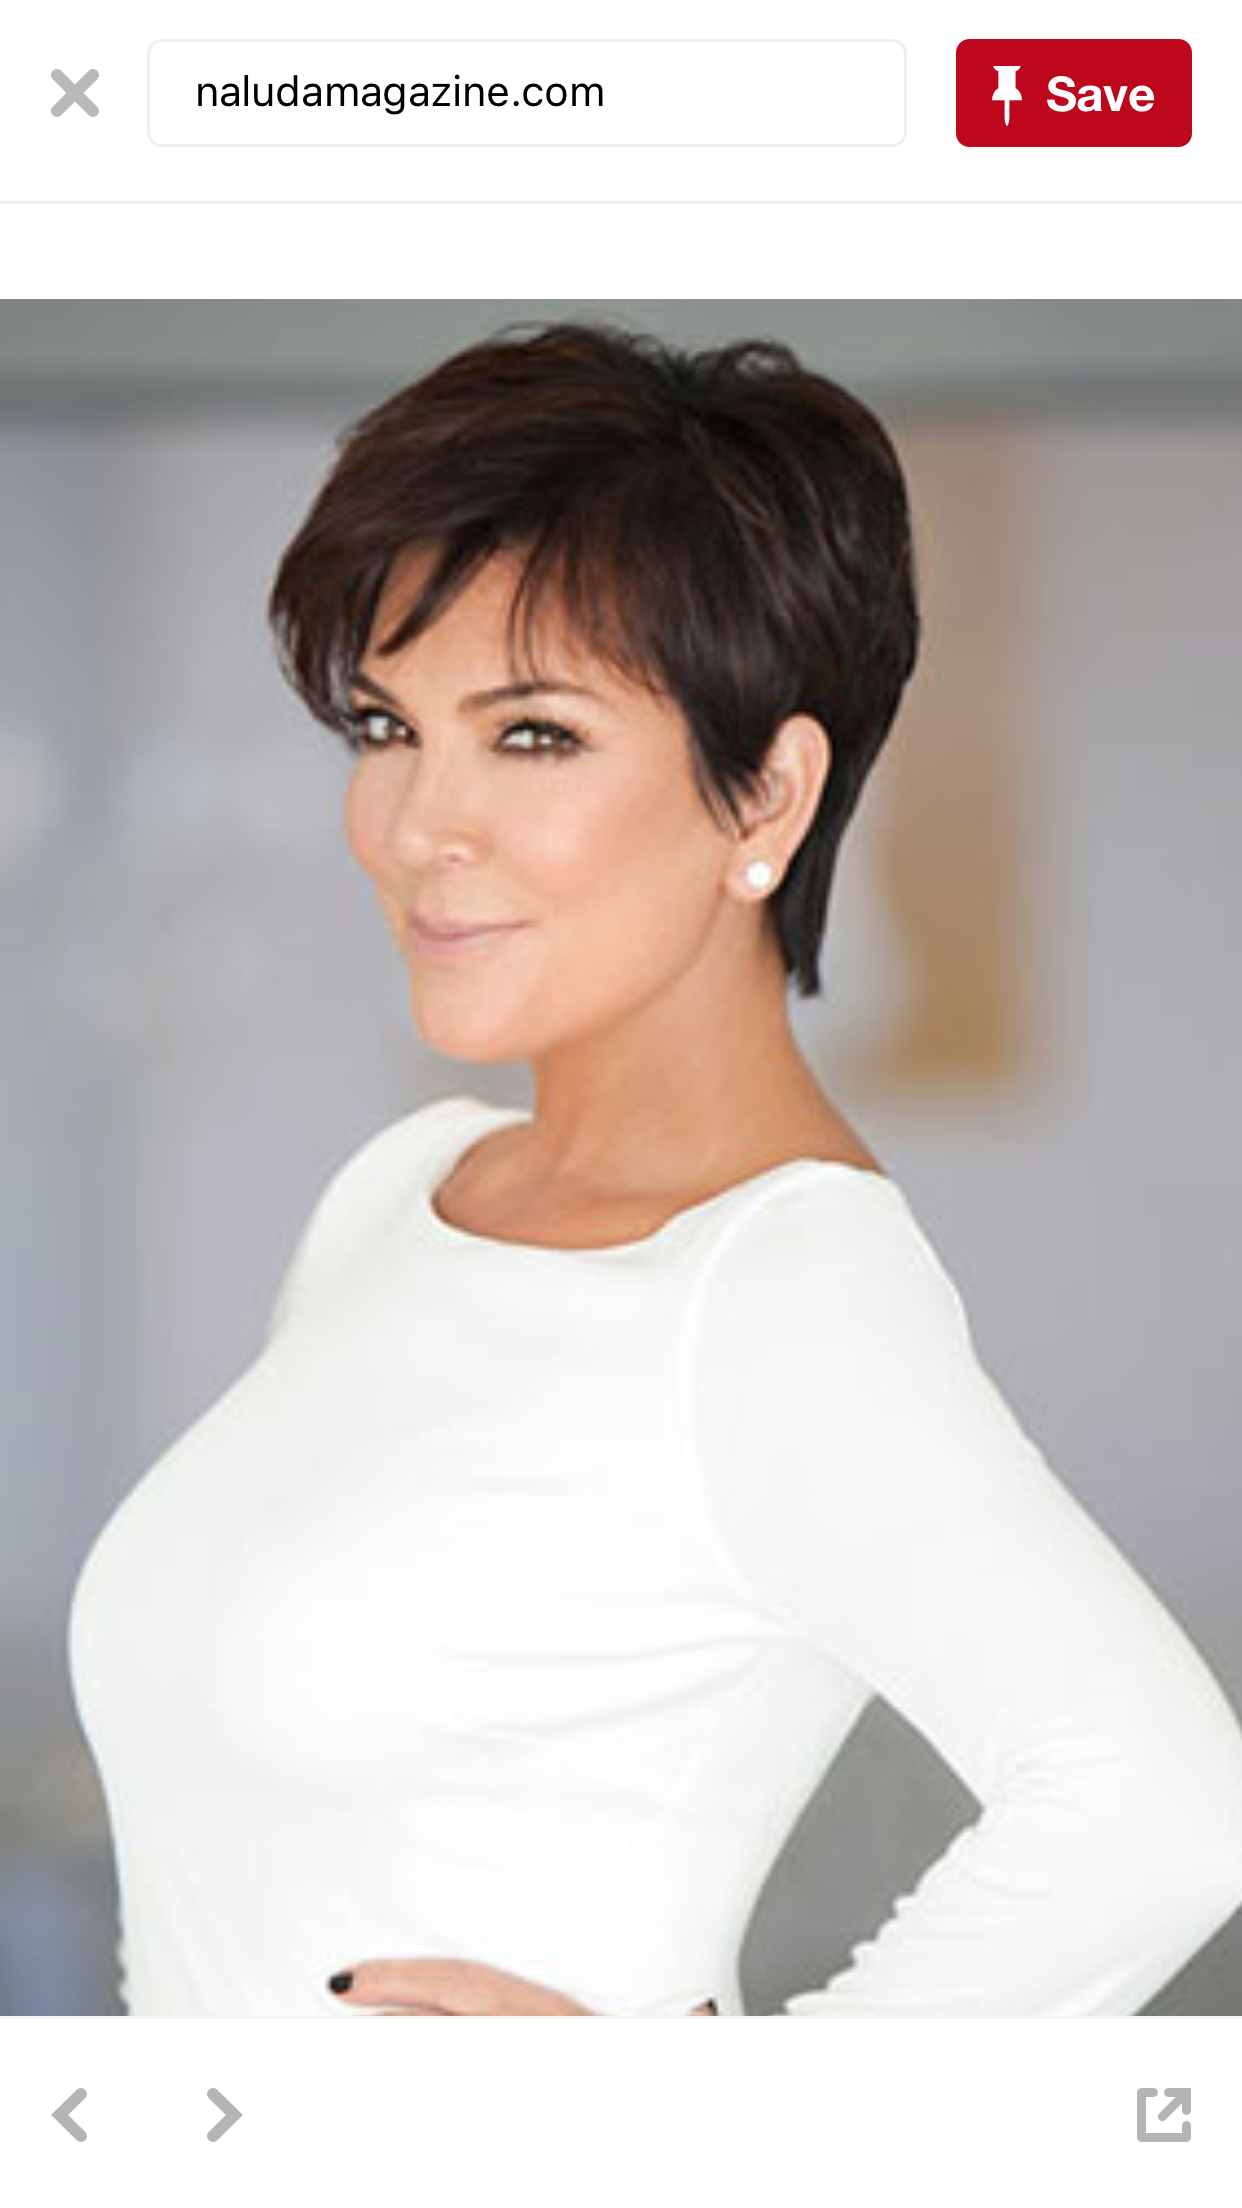 The way her haircut is styled  Jenner hair, Kris jenner haircut